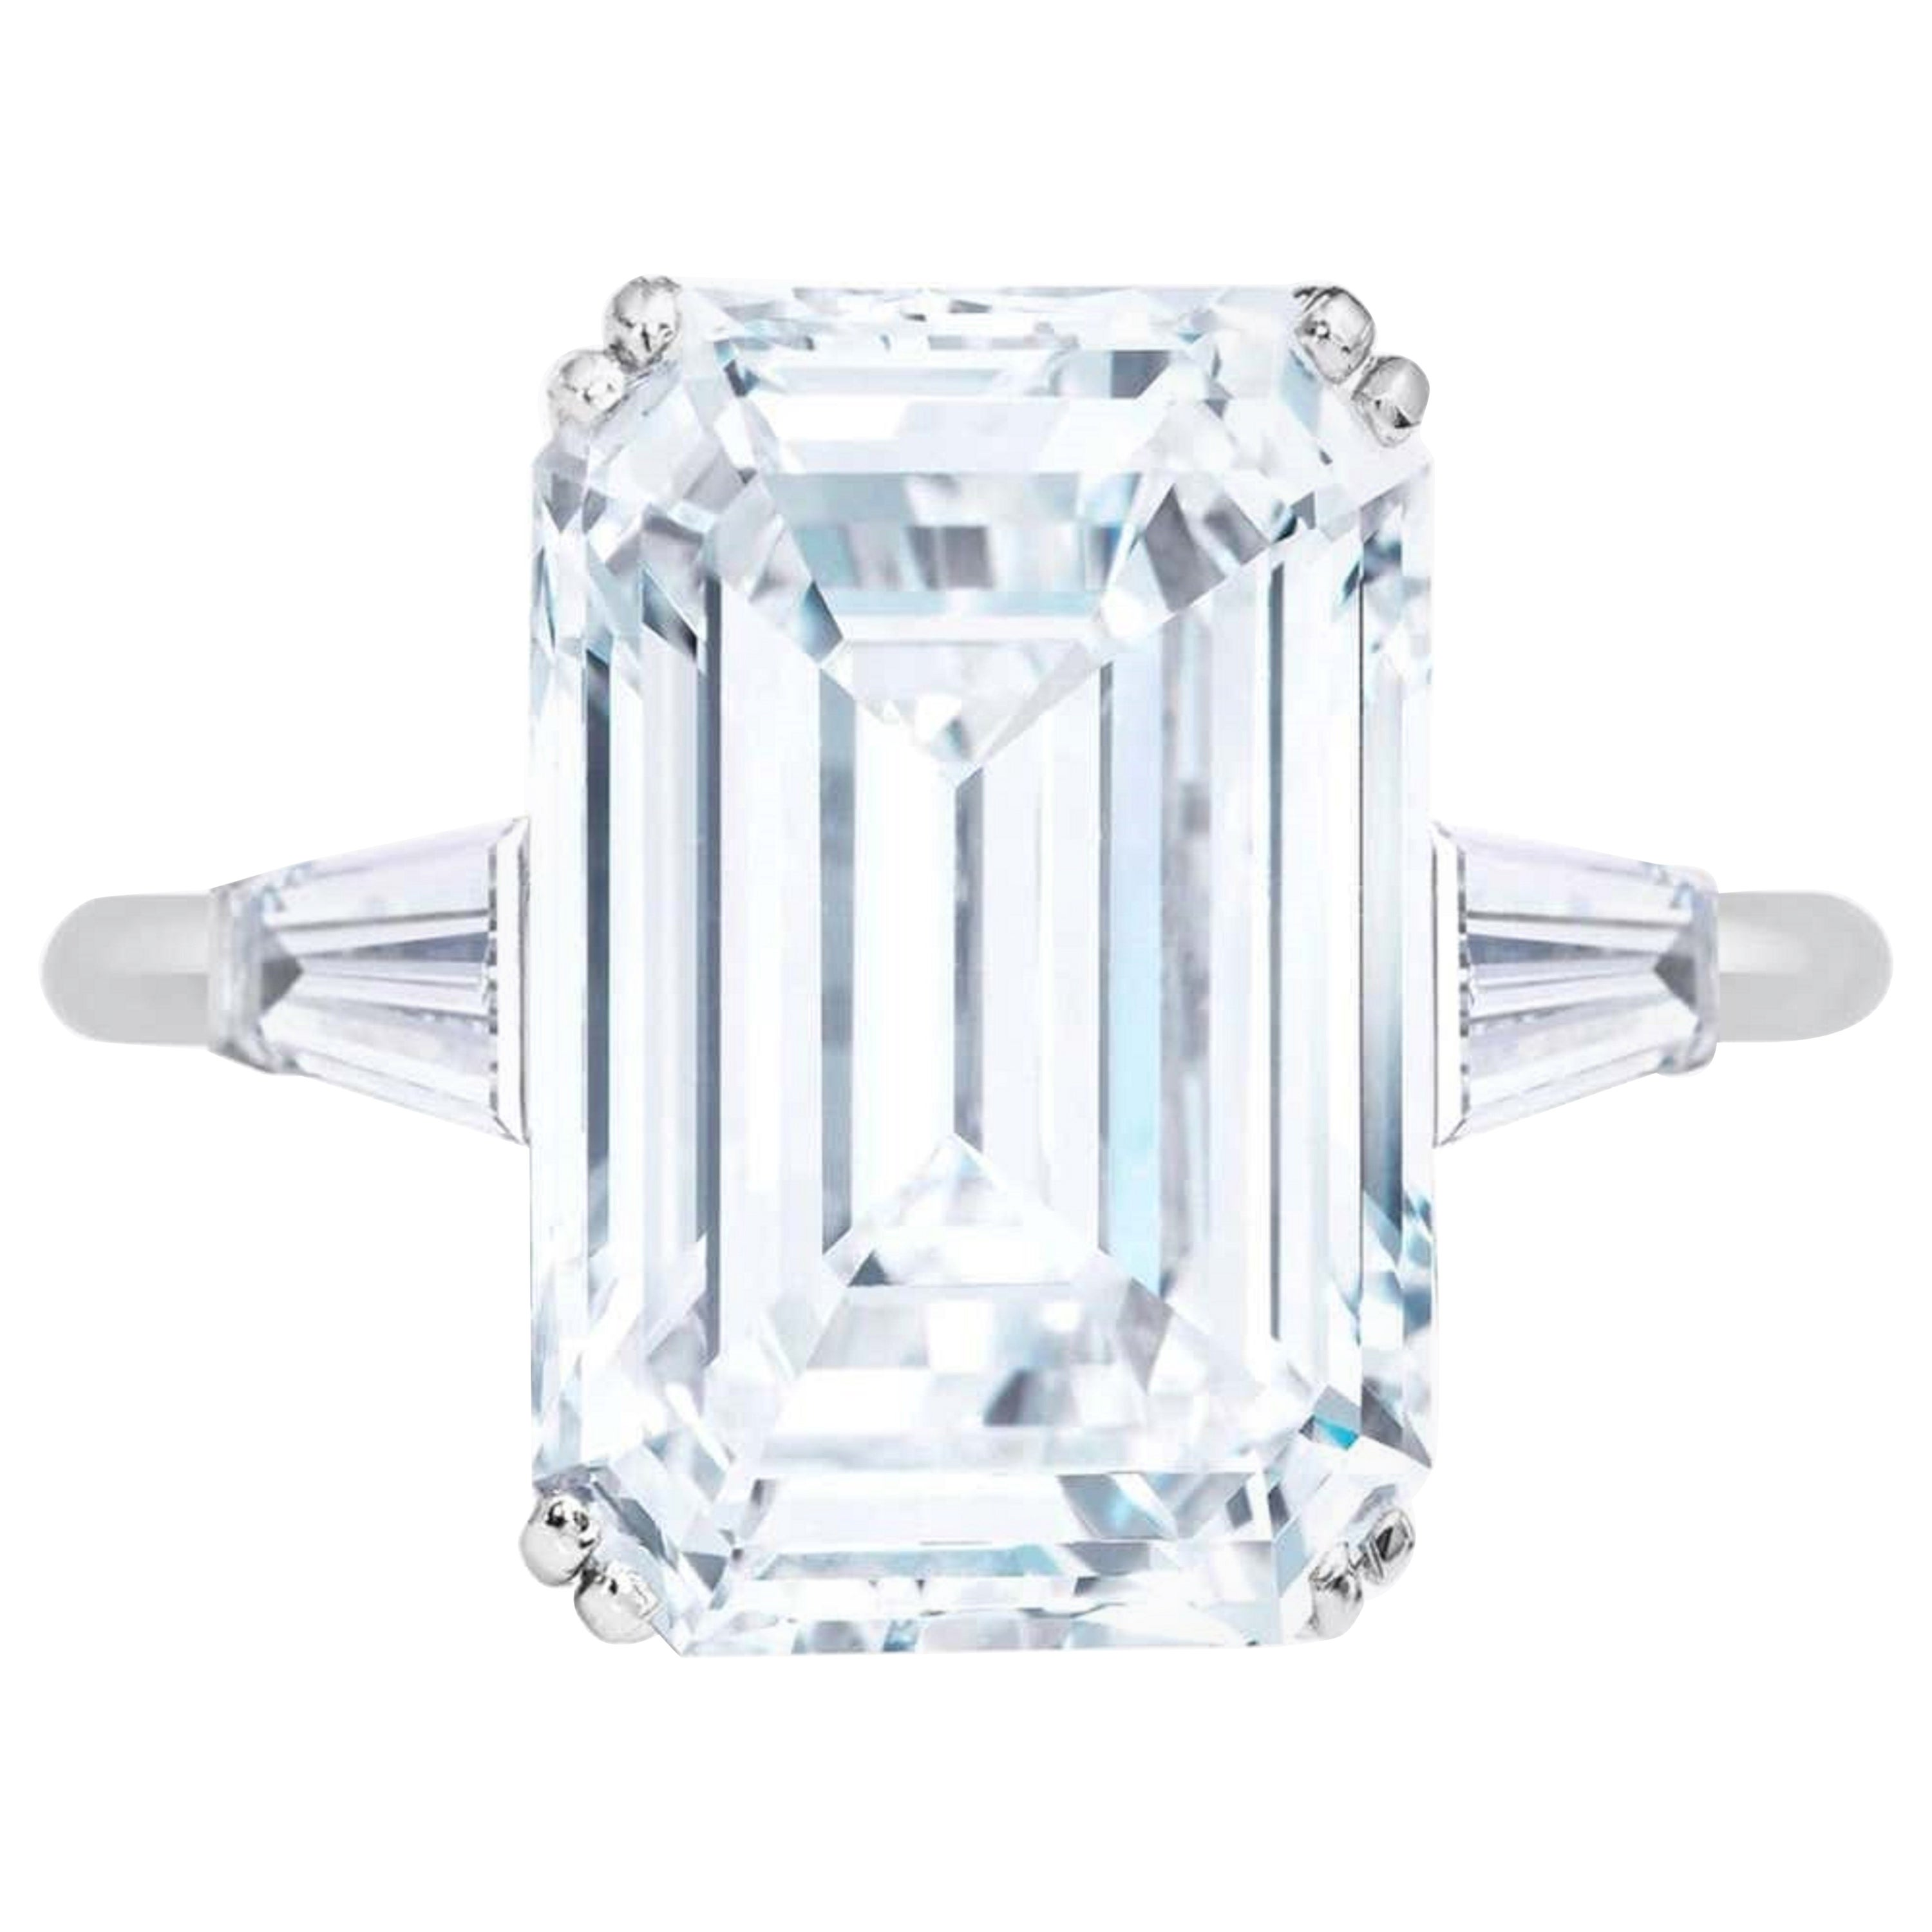 Exceptional Flawless Type 2A GIA Certified Emerald Cut Diamond Ring